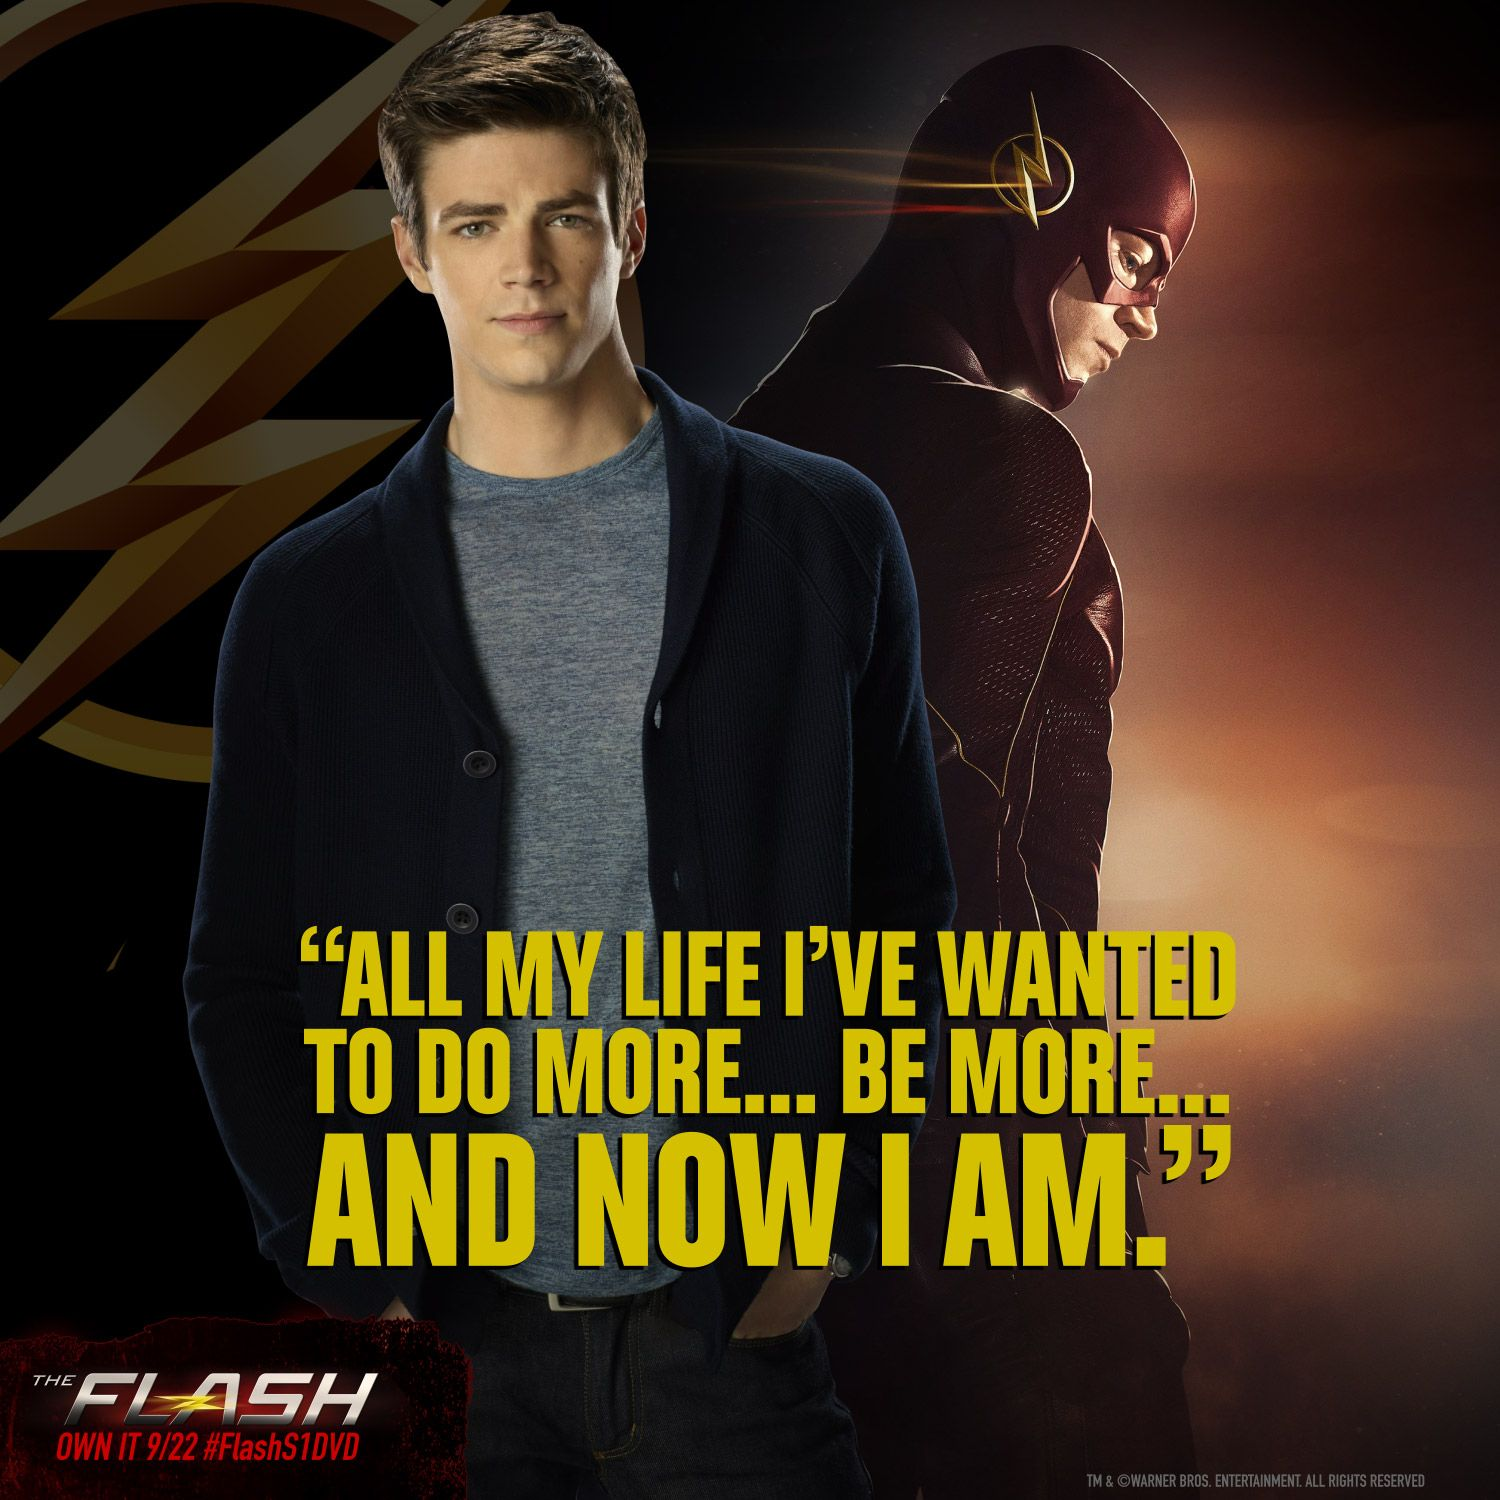 The Flash Quotes There's a hero in all of us. Watch Barry go from ordinary to the  The Flash Quotes